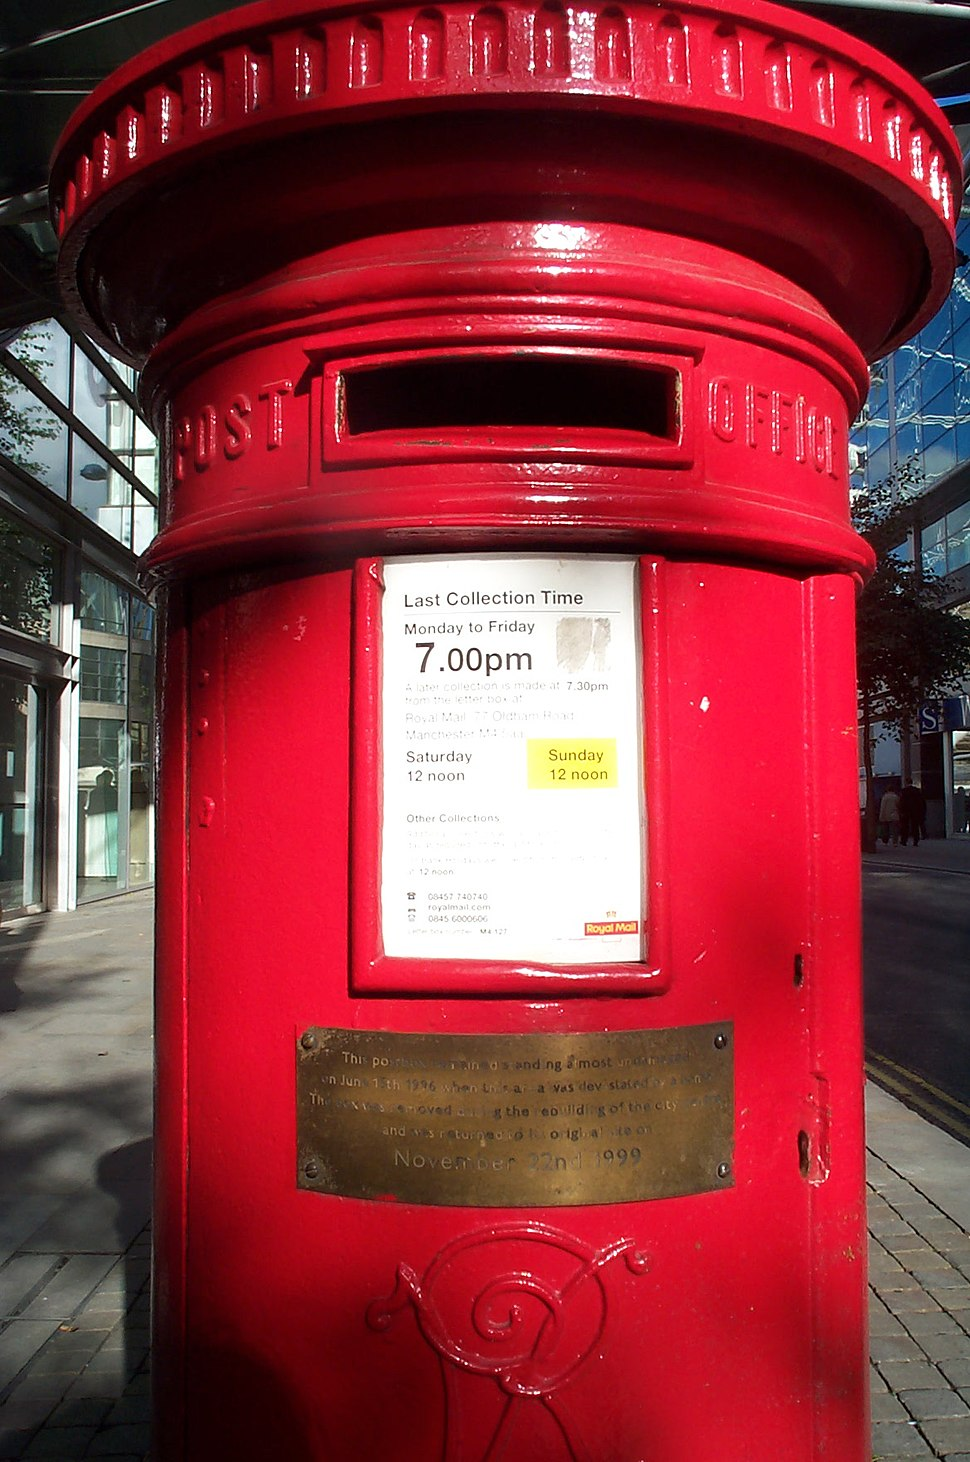 Postbox Manchester survived IRA 1996 bomb 20051020